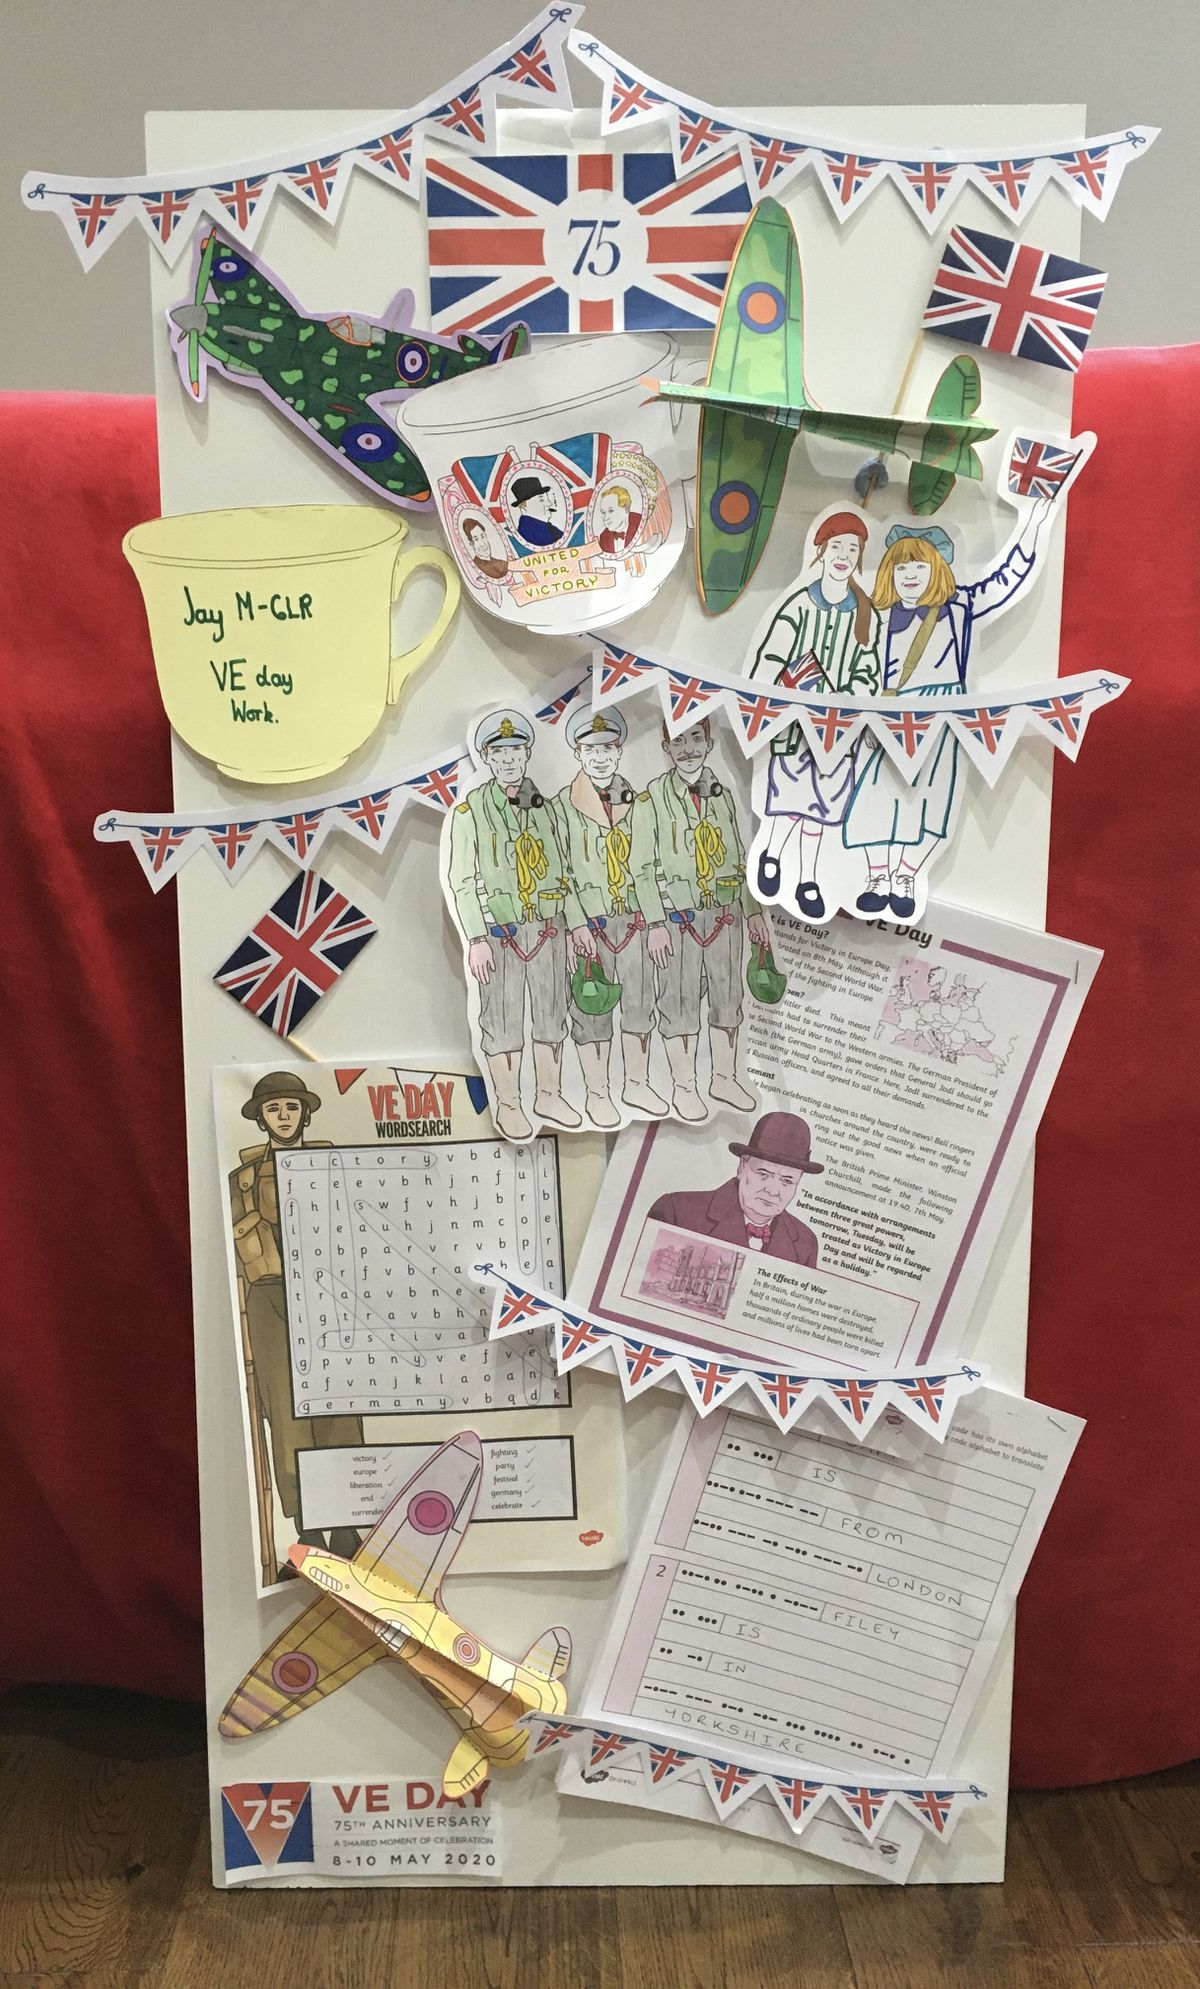 Activities provided by Uplands Junior school where our Jay McNaughton, year 6, made a VE Day collage